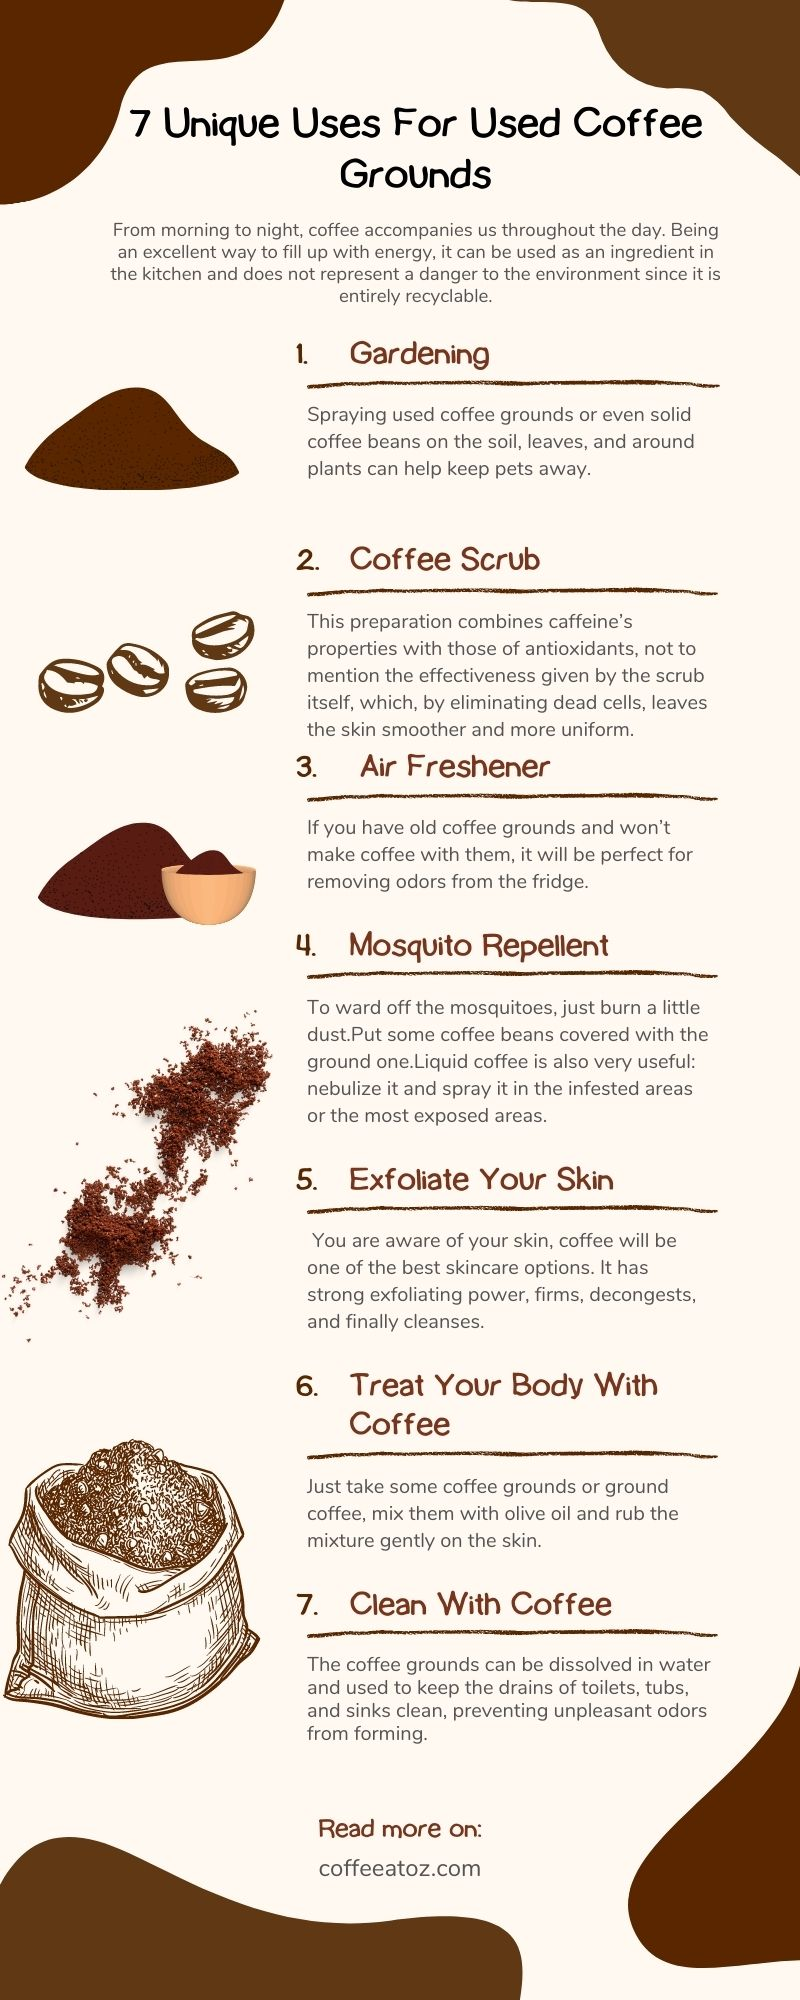 Best Uses For Used Coffee Grounds